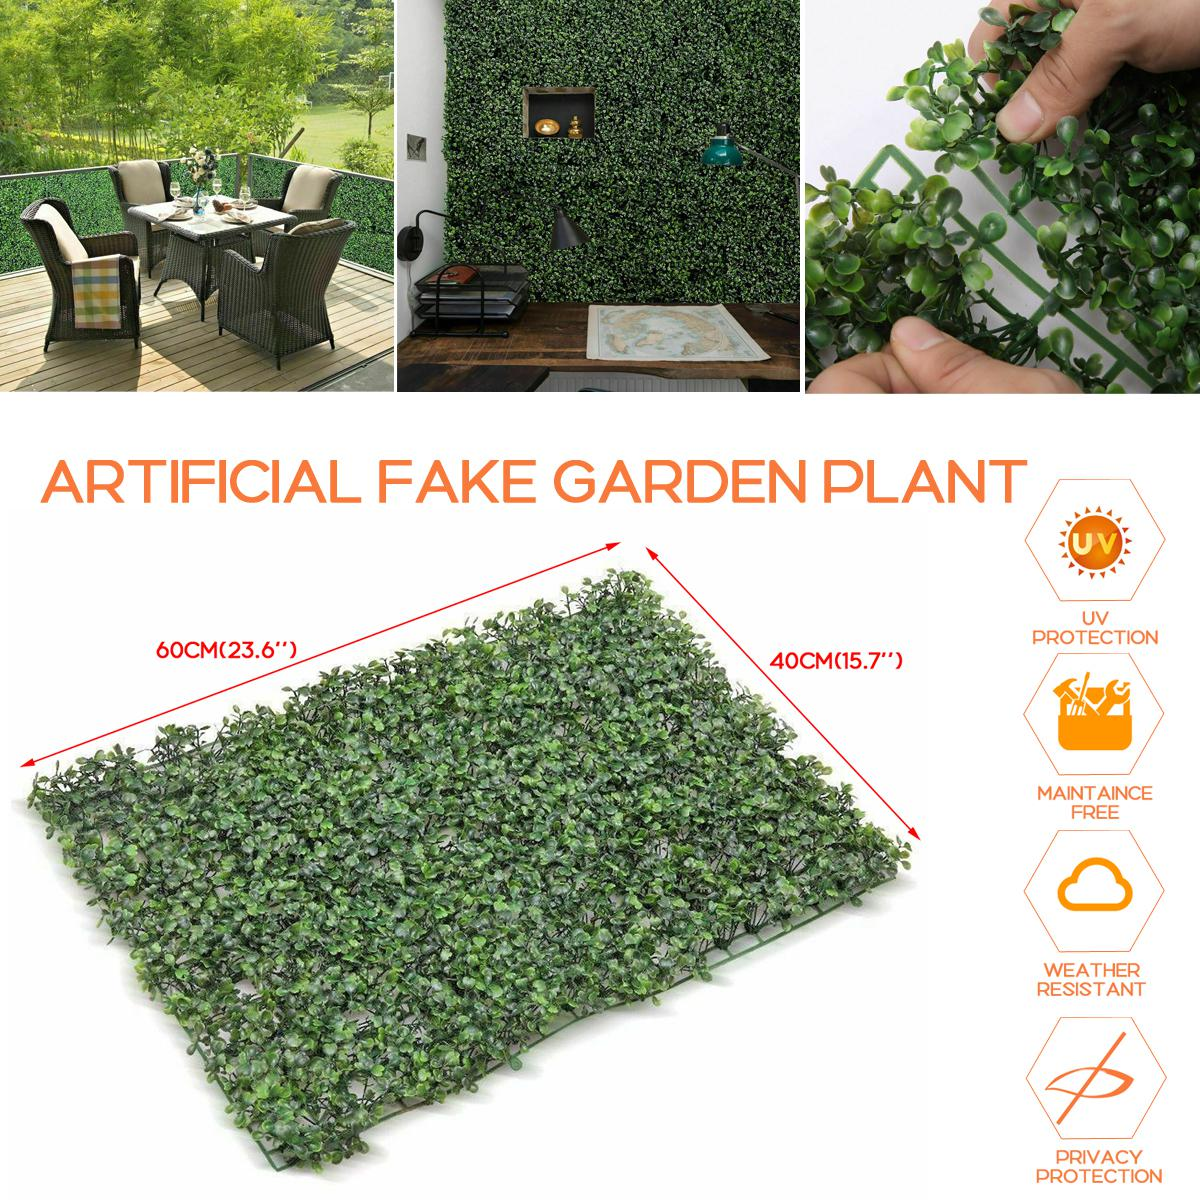 60x40cm Artificial Lawn Thick Grass Plant Hedge Fake Vertical Garden Green Wall Mat Trimming Free Fence W Uv Coating Protection For Indoor Outdoor Office Shop Home Decor 10pcs Matt Blatt